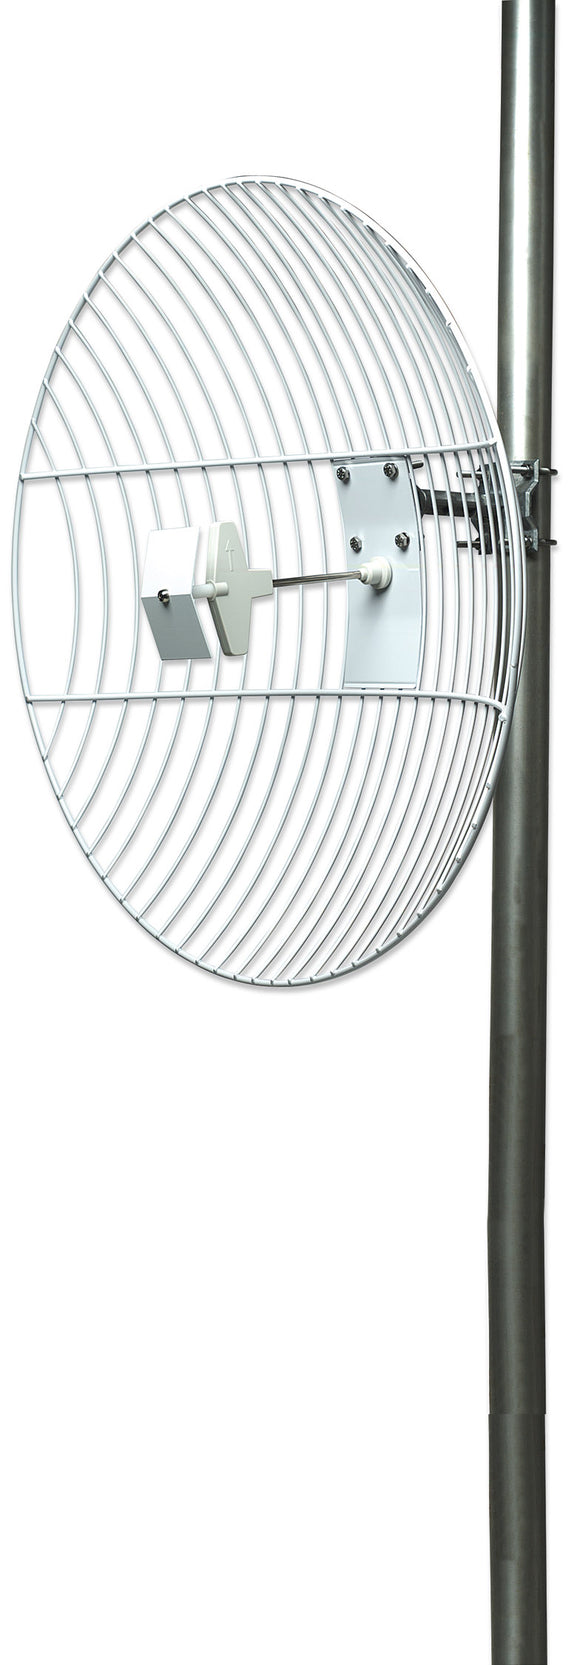 High-Gain Outdoor Parabolic Grid Antenna Image 1